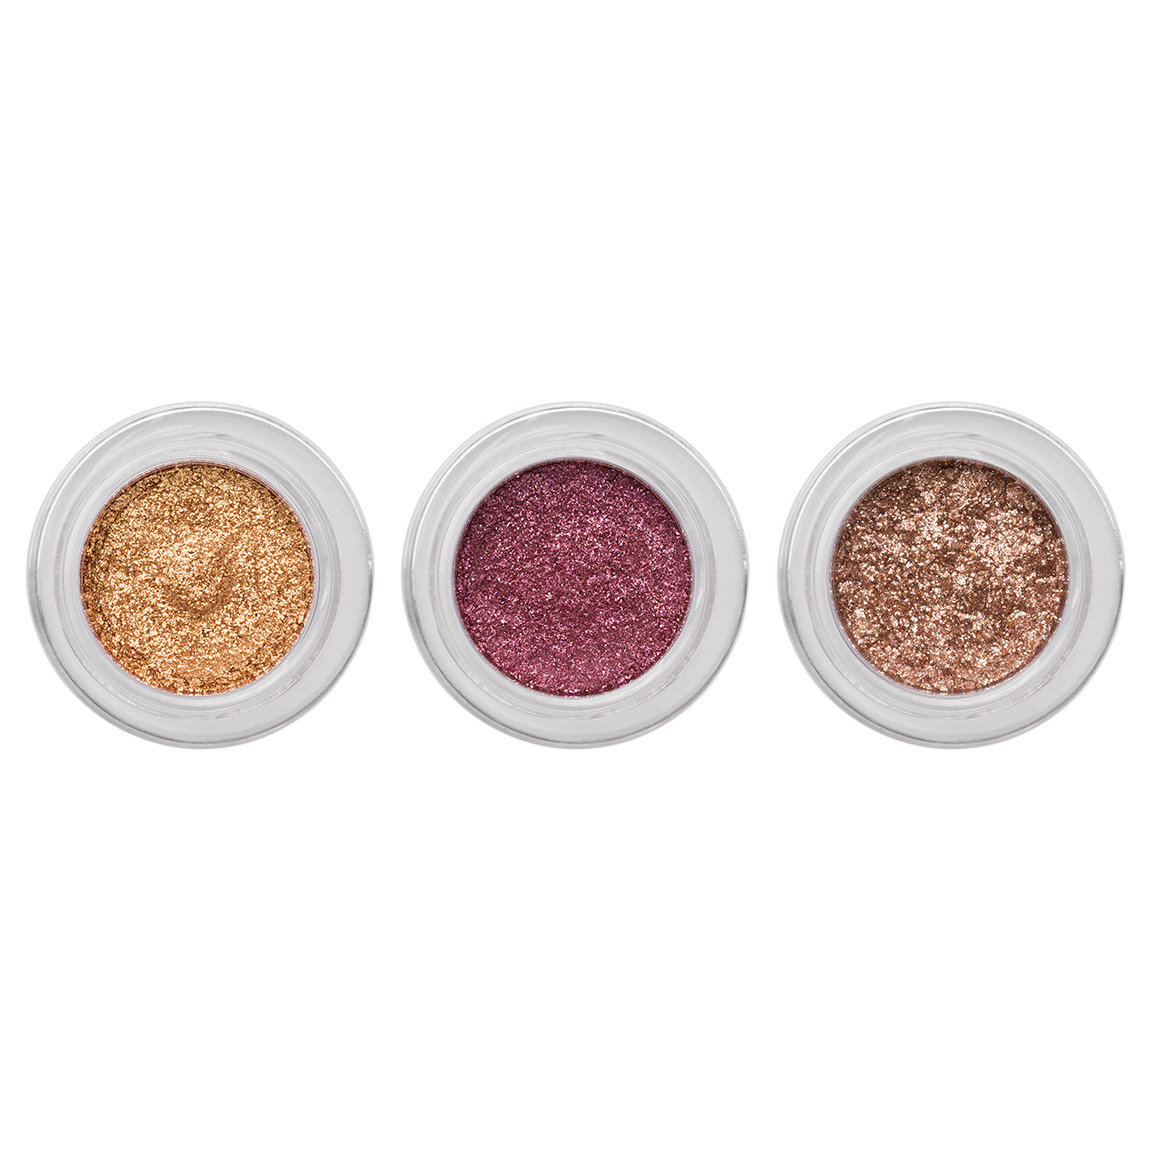 Hourglass Scattered Light Glitter Eyeshadow Collection product swatch.